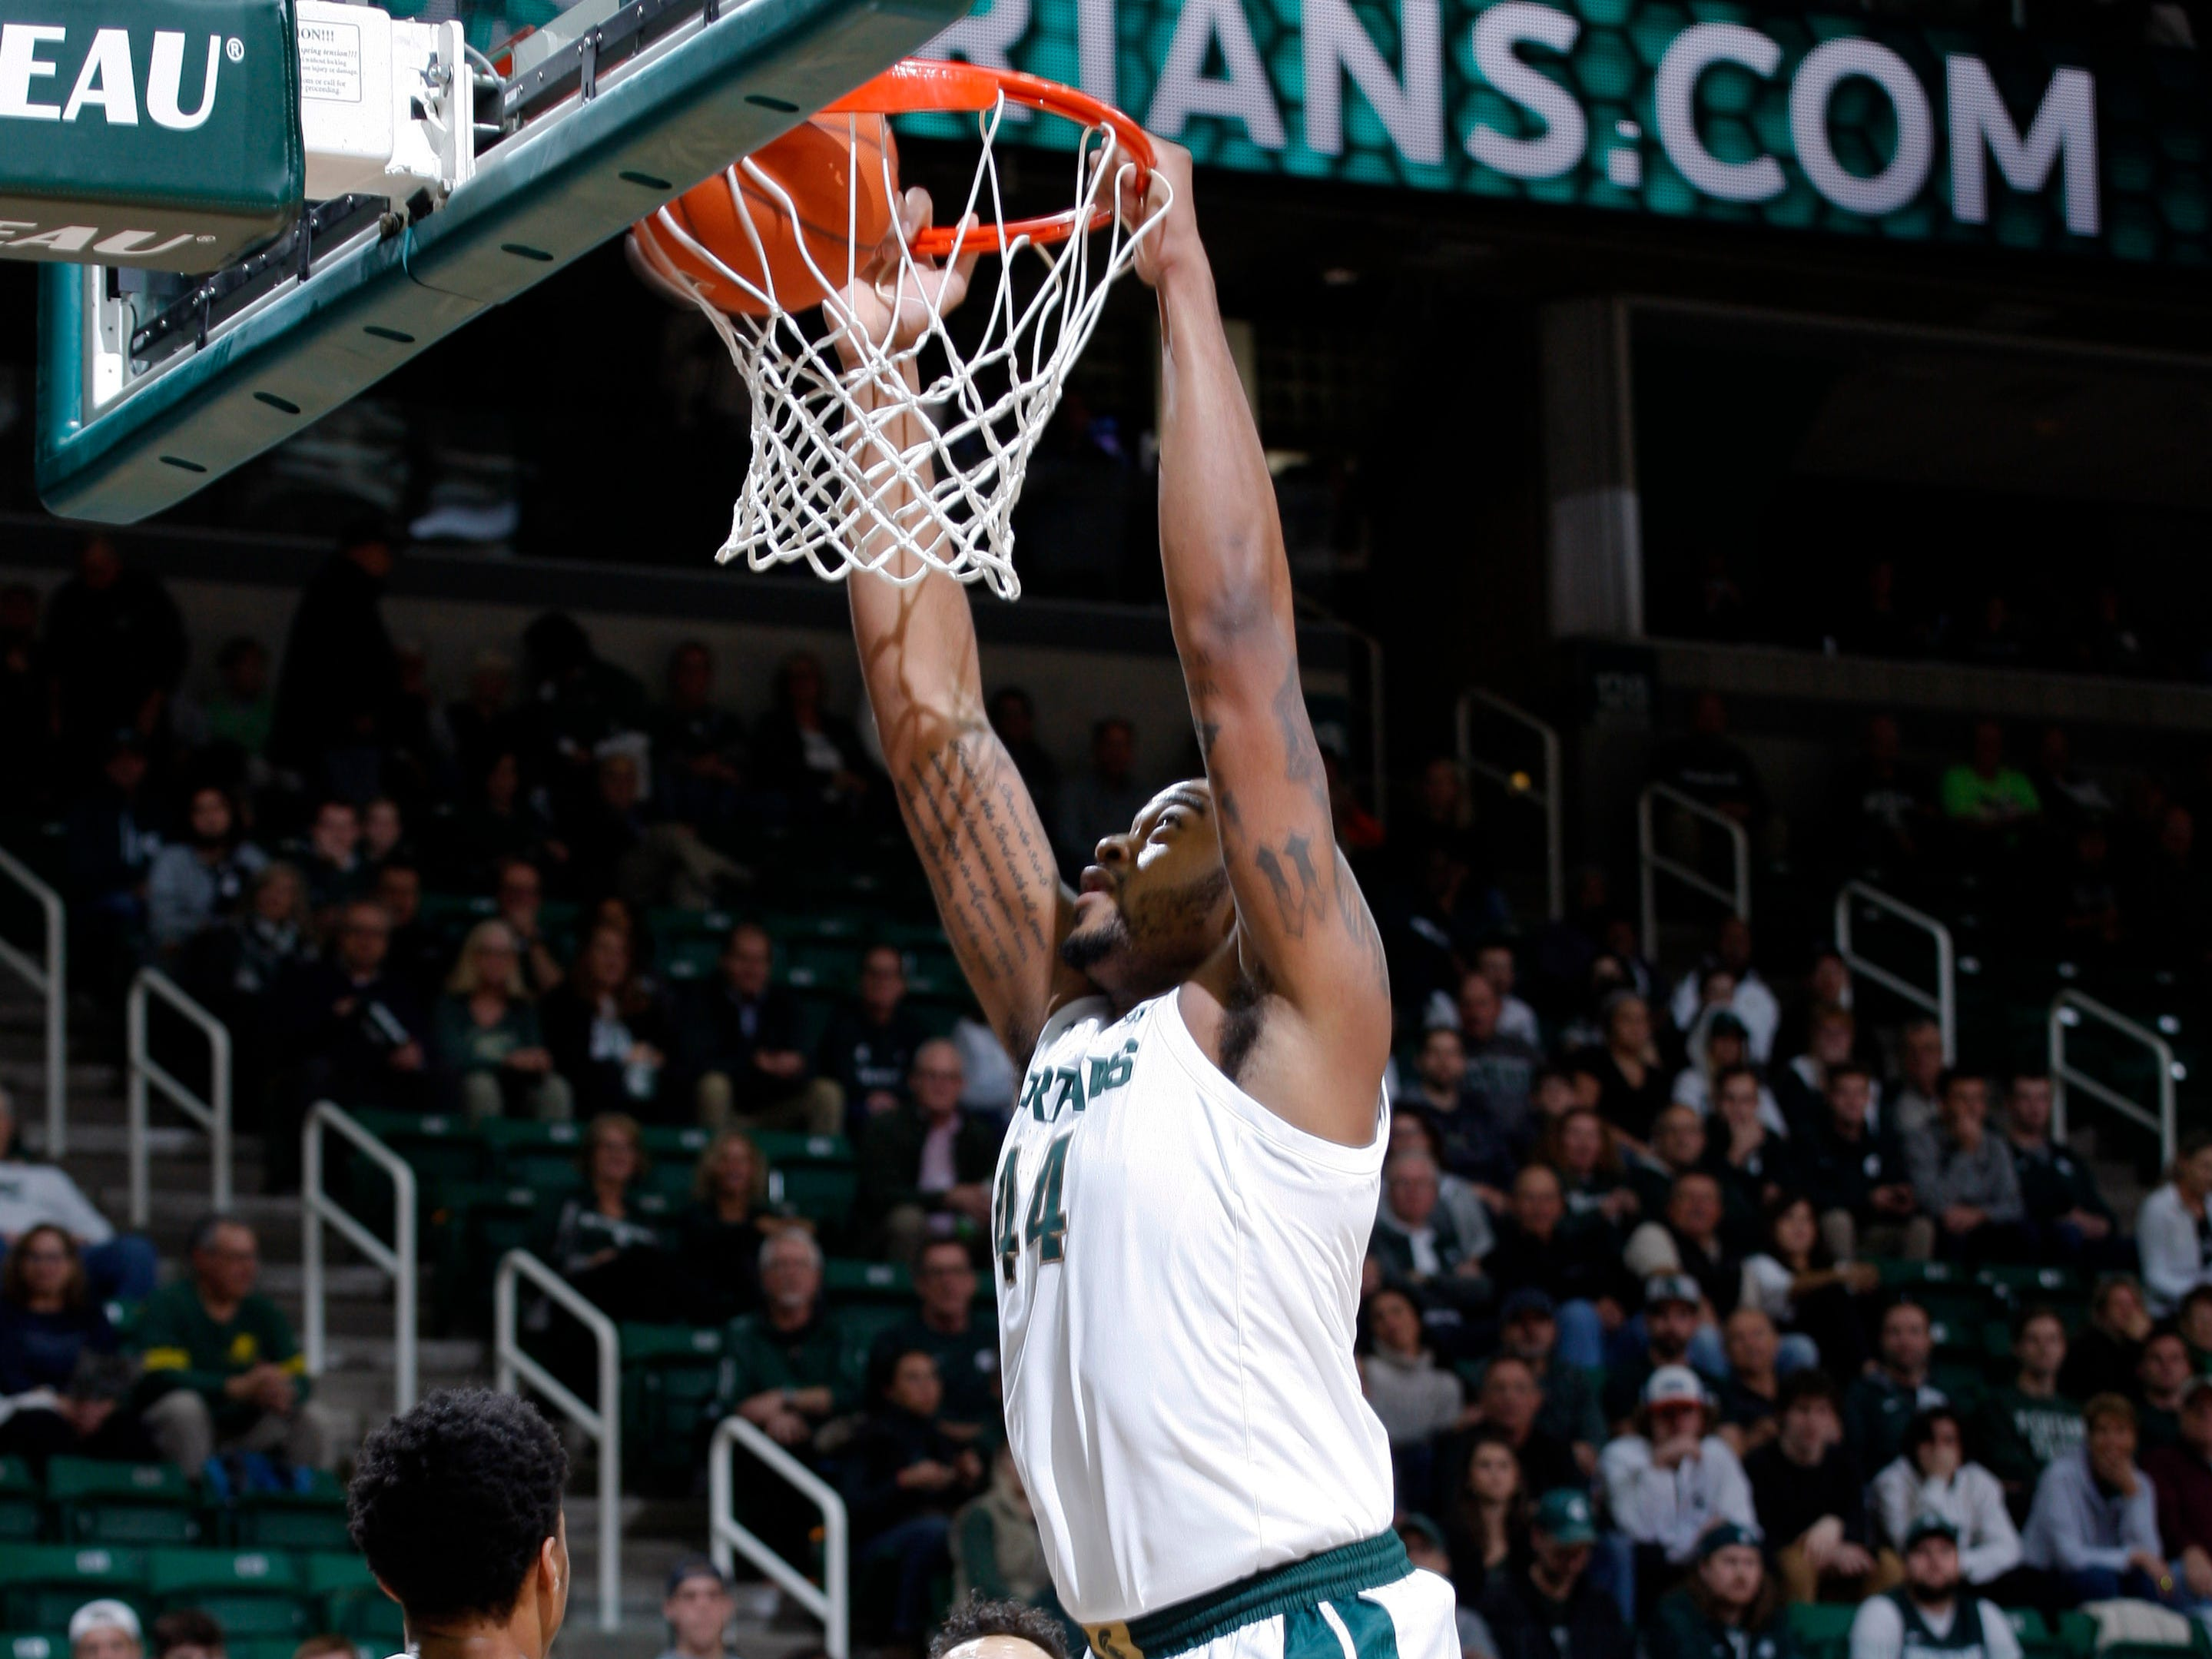 Michigan State's Nick Ward dunks over Northern Michigan's Myles Howard (33) and Isaiah Johnson (13), Tuesday, Oct. 30, 2018, in East Lansing, Mich.